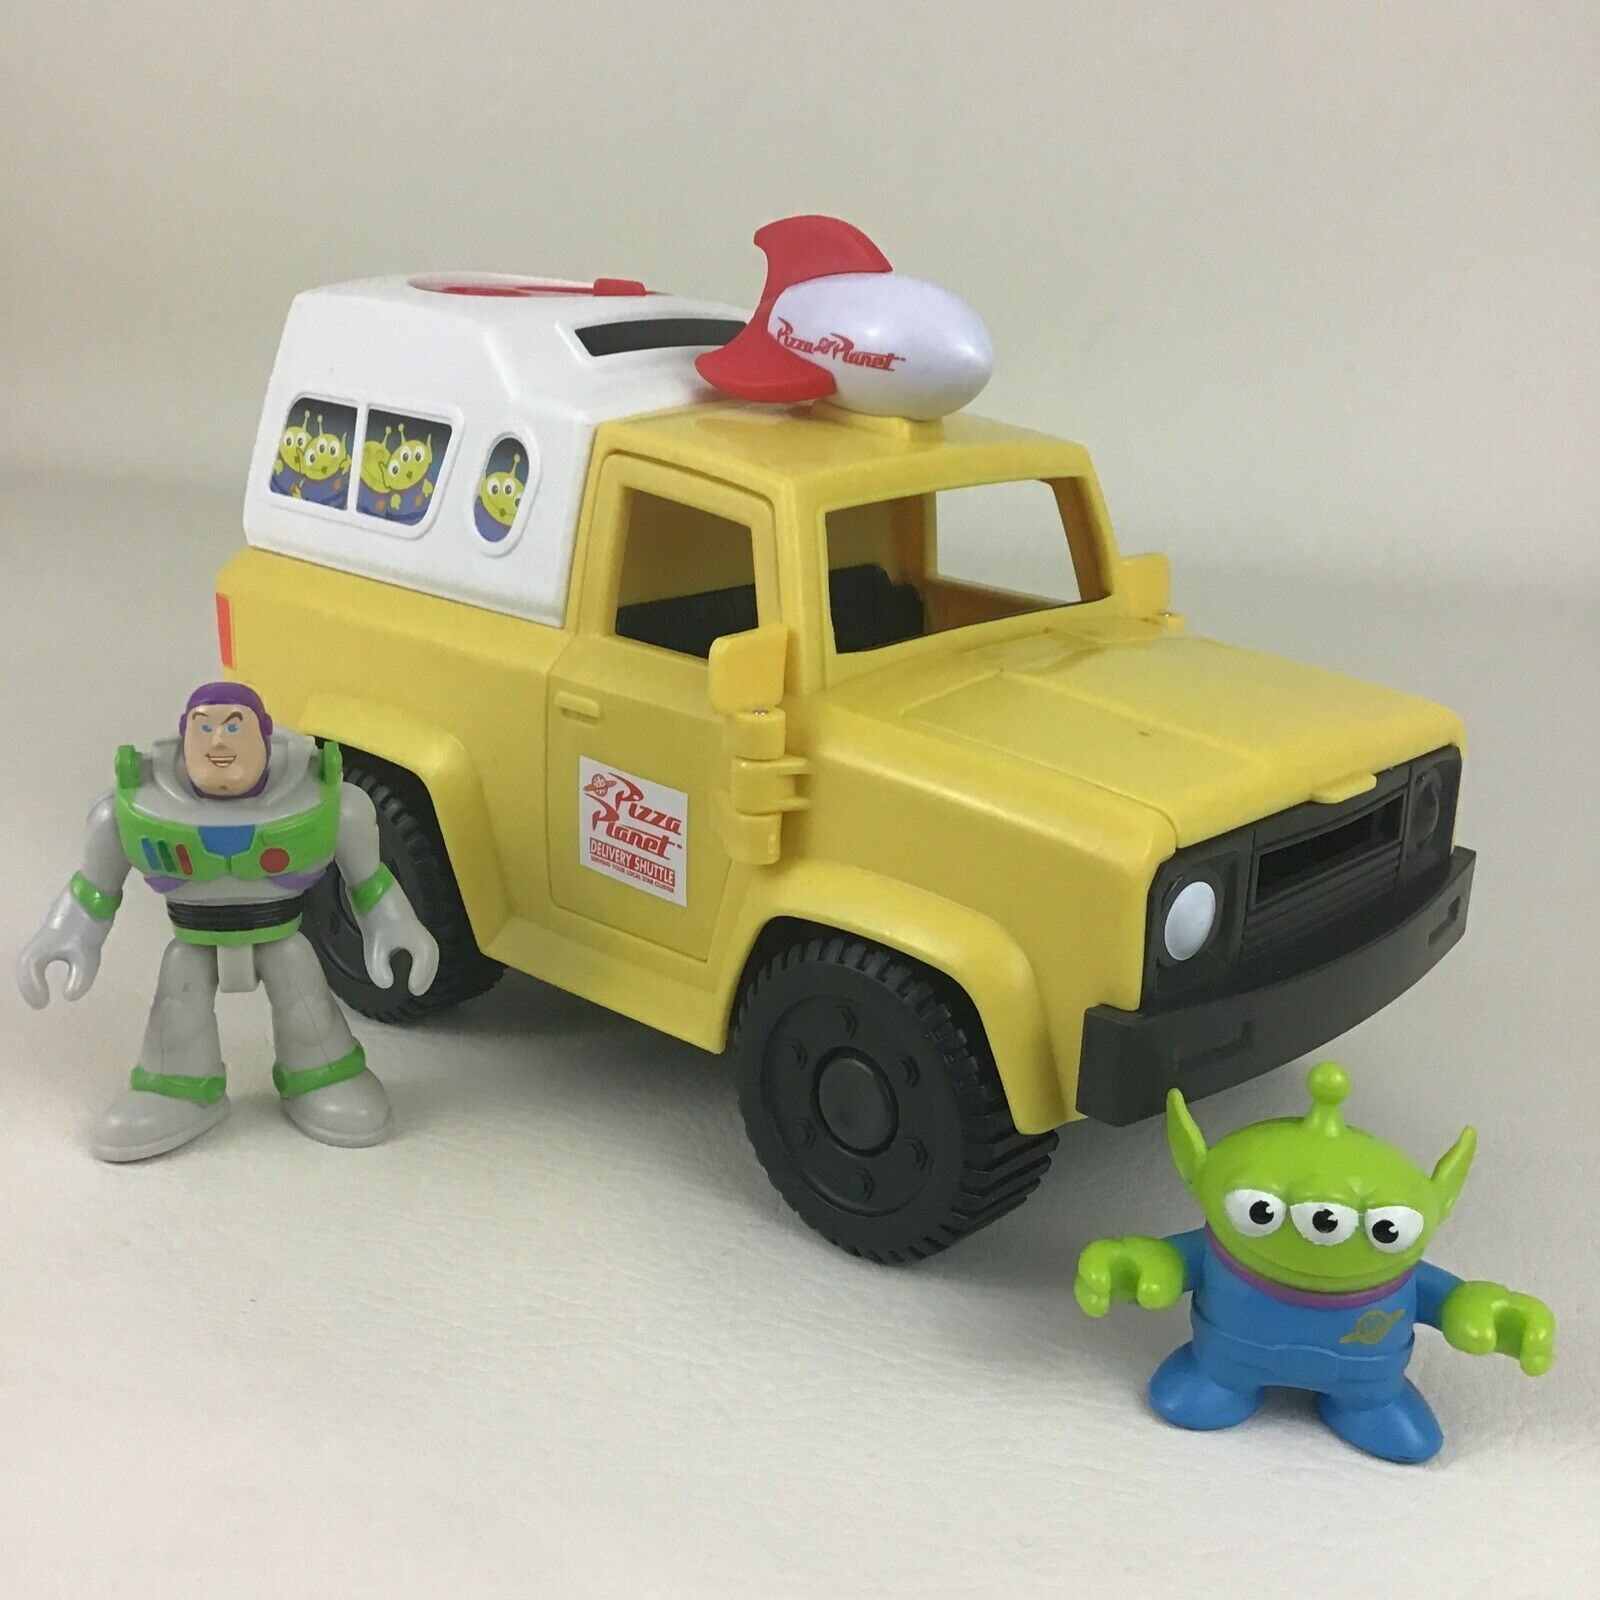 Imaginext Disney Toy Story Pizza Planet Truck Little Green Men Alien 2011 Mattel - $19.75